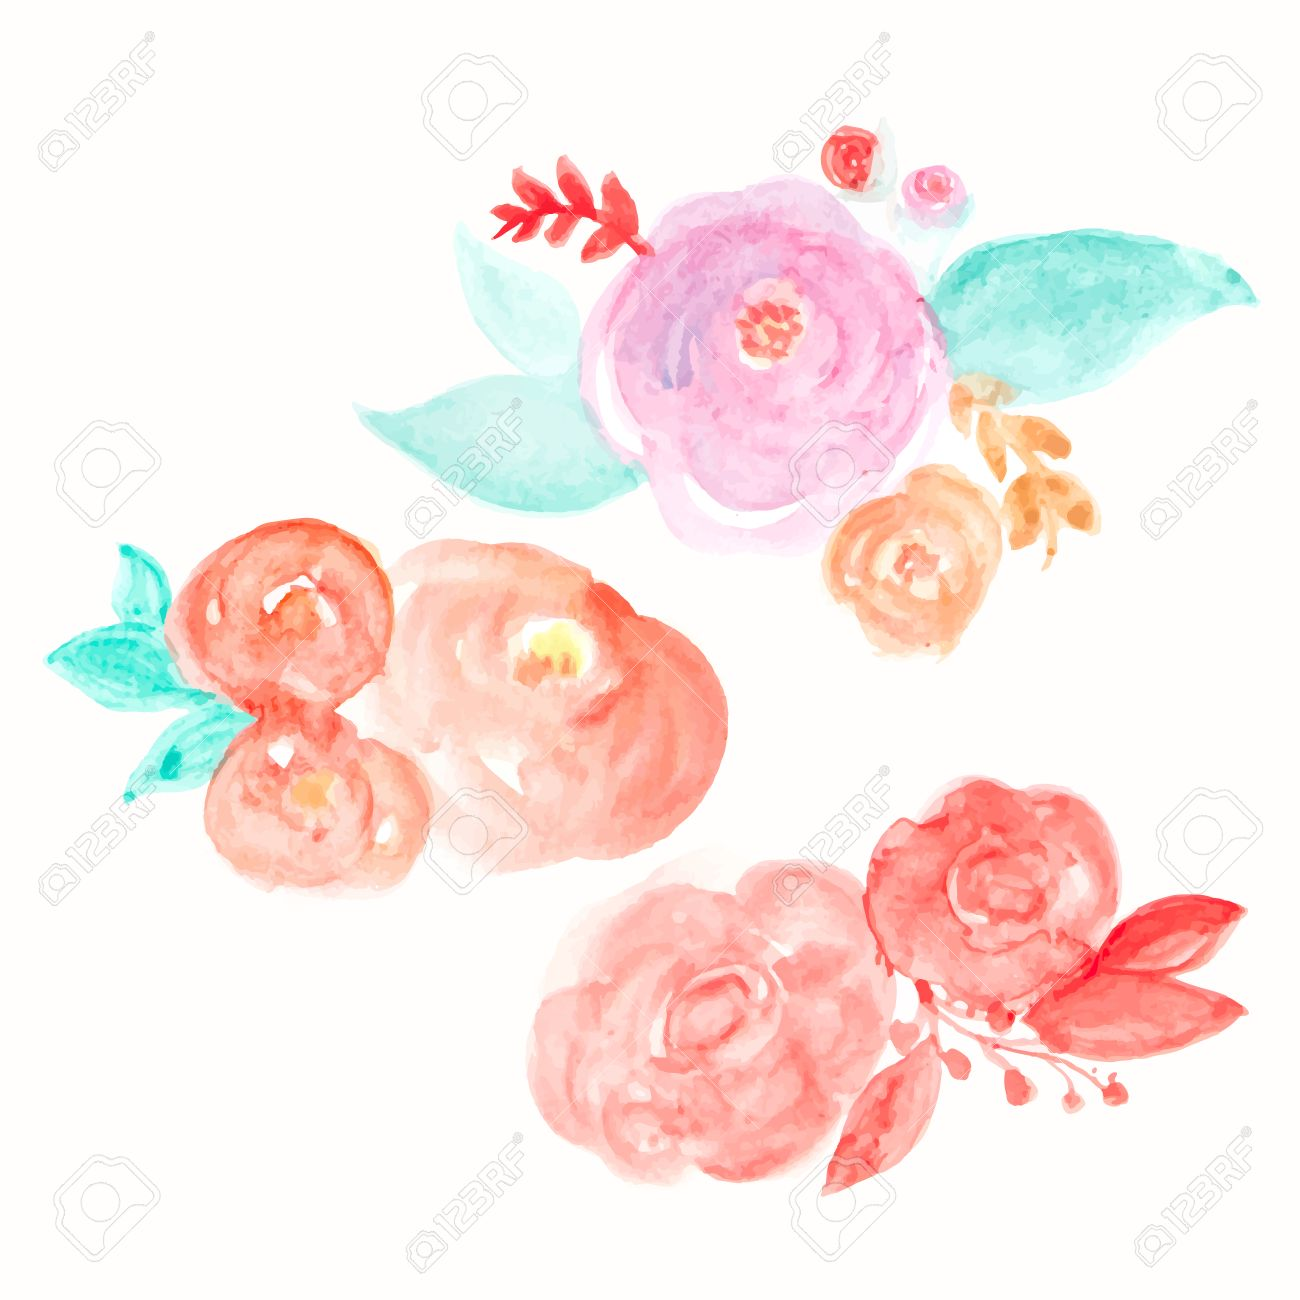 Watercolor Flower Vector Round Flowers Abstract